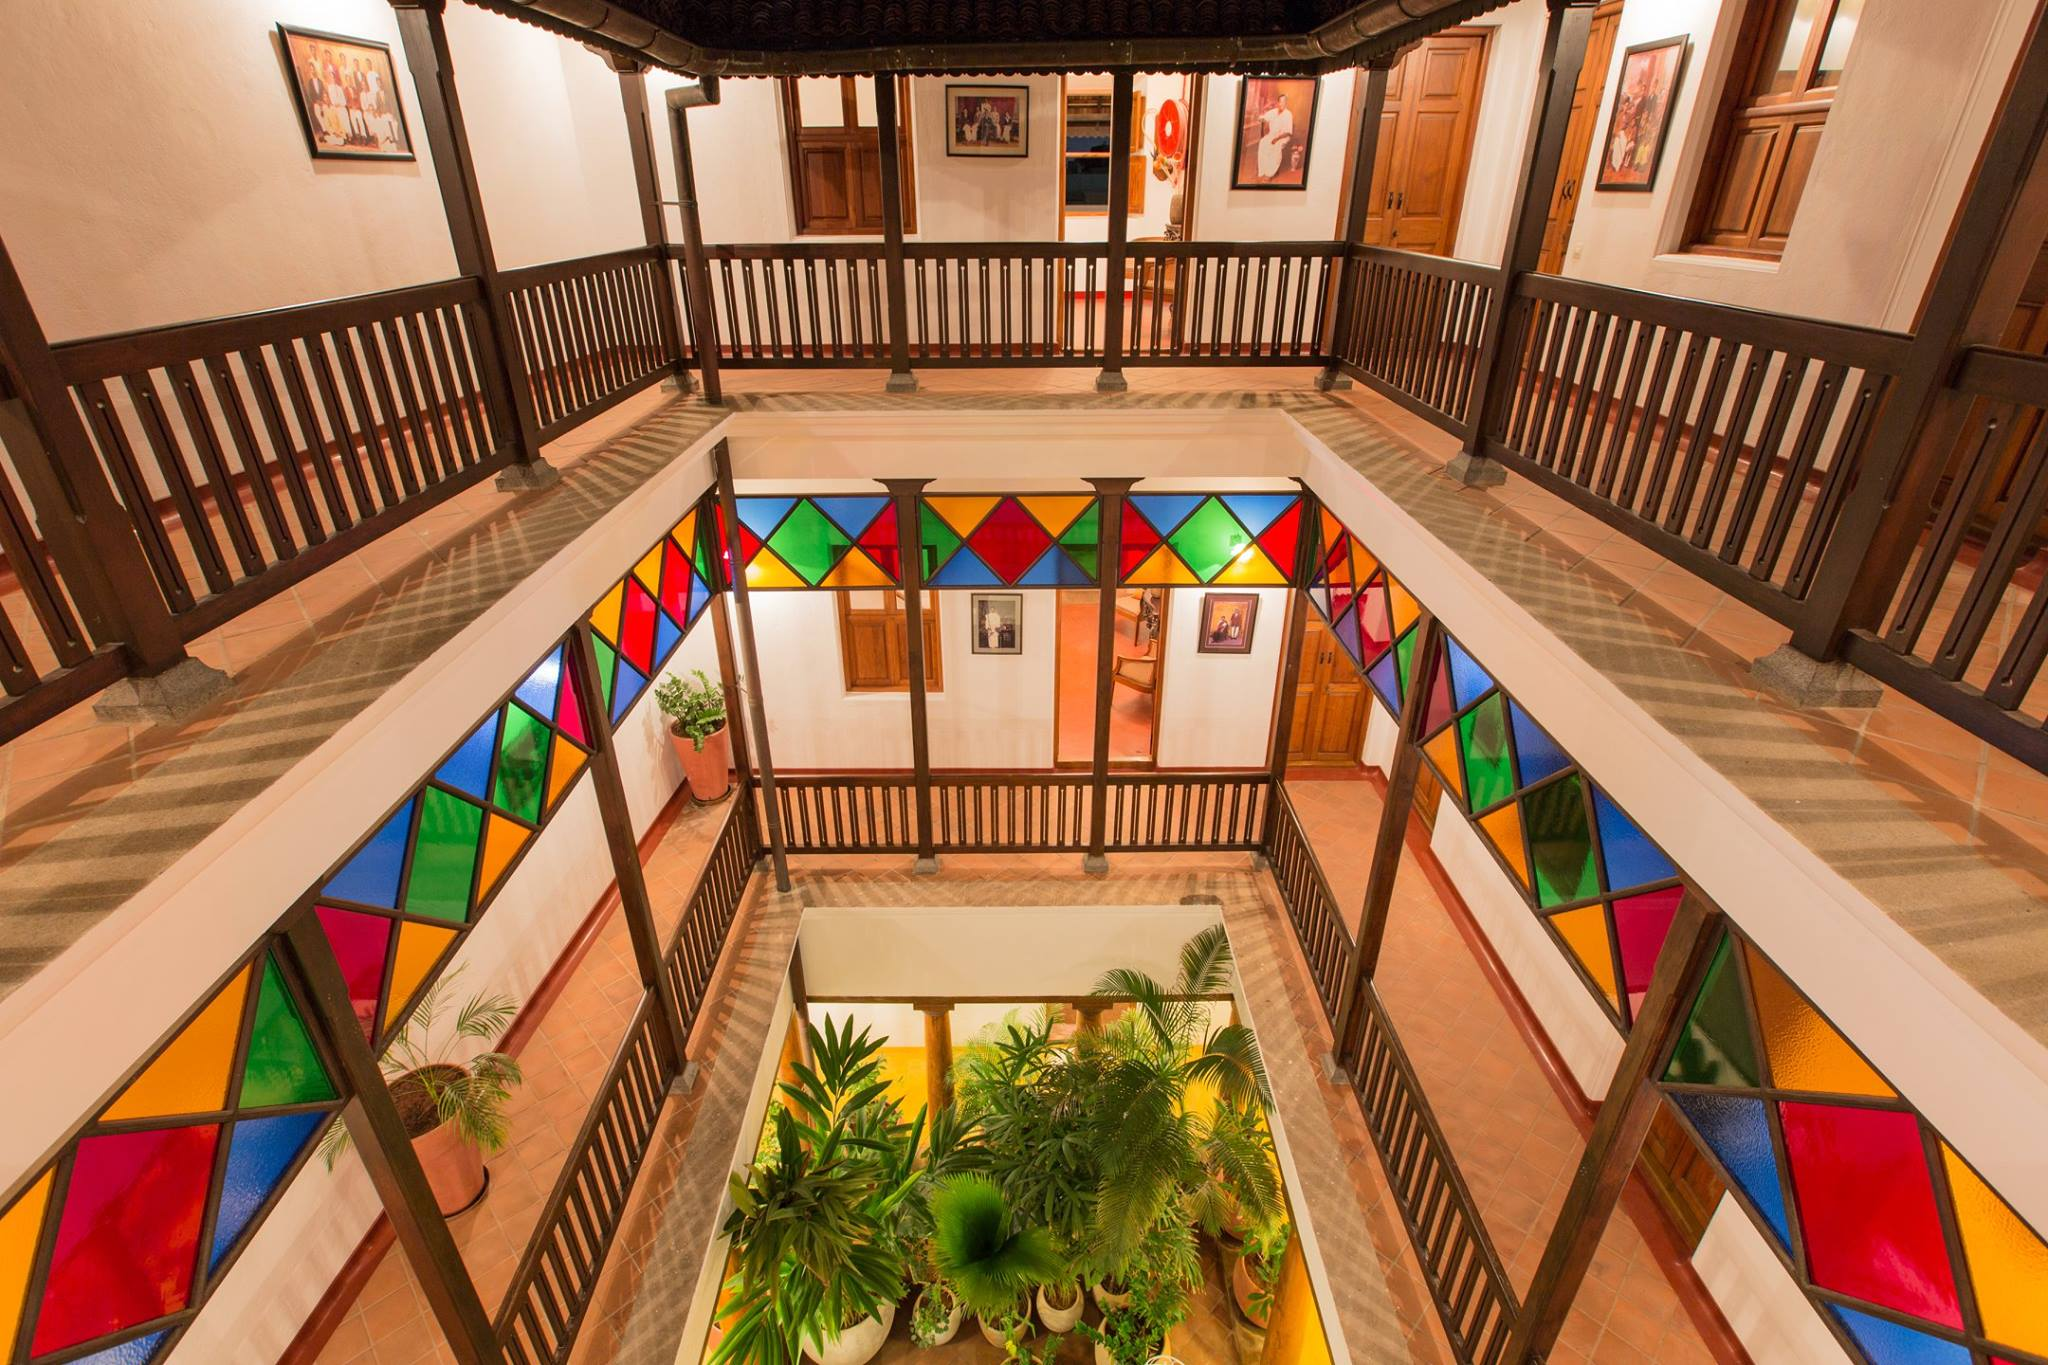 Tamilian hospitality and French architecture